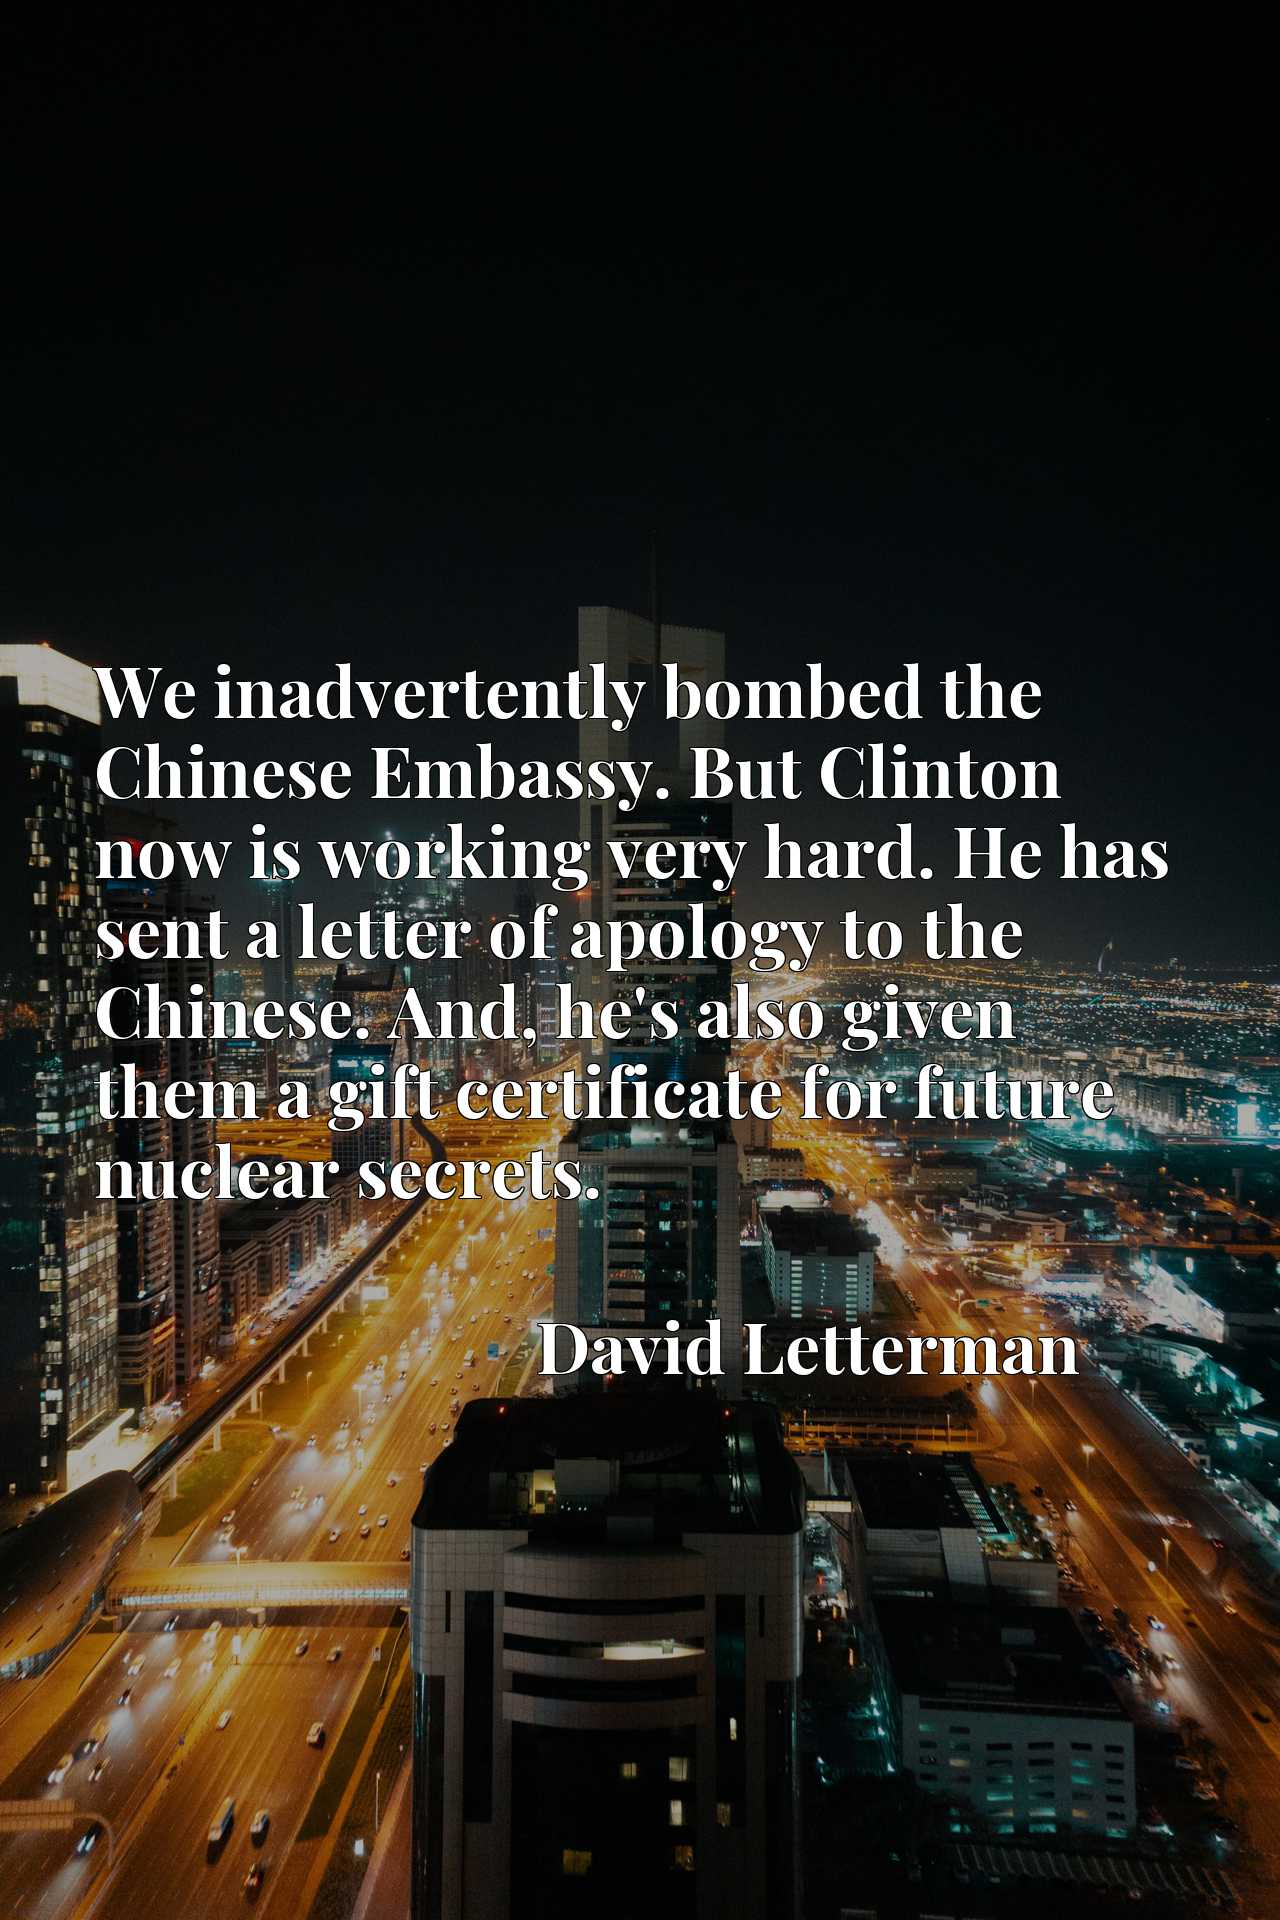 We inadvertently bombed the Chinese Embassy. But Clinton now is working very hard. He has sent a letter of apology to the Chinese. And, he's also given them a gift certificate for future nuclear secrets.